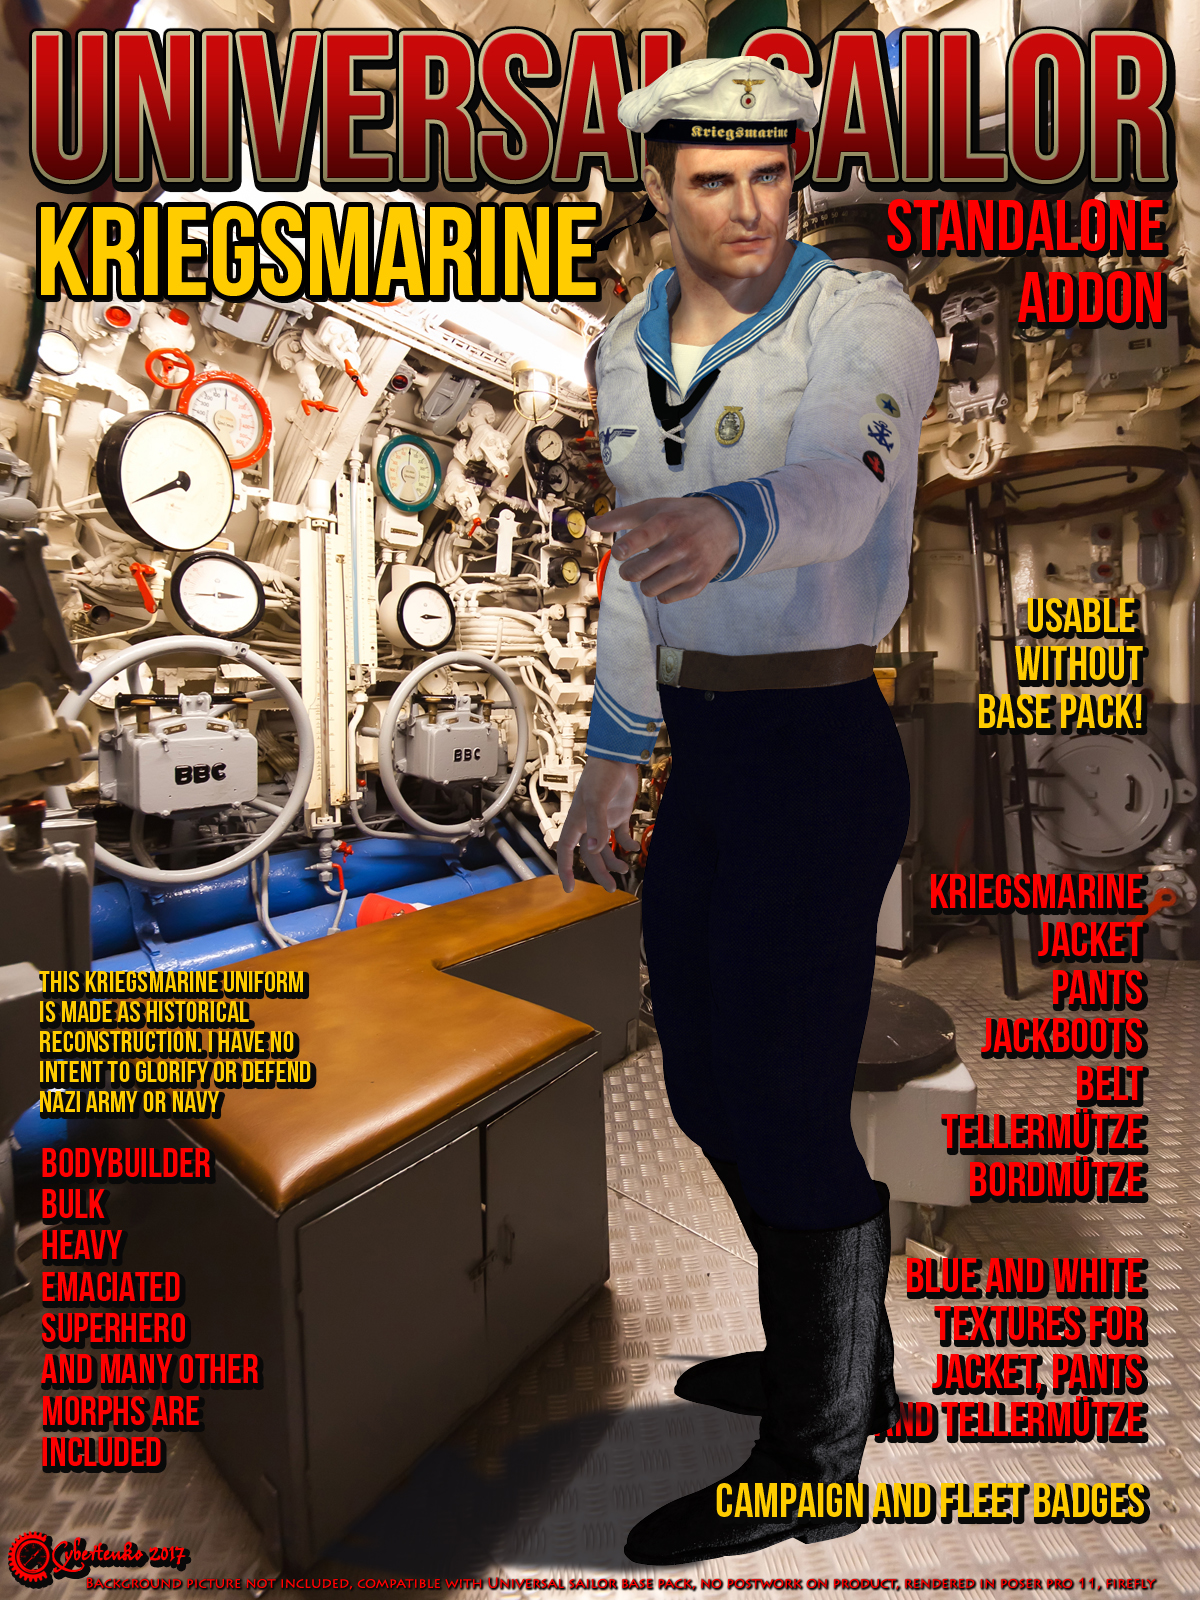 Kriegsmarine for Universal Sailor